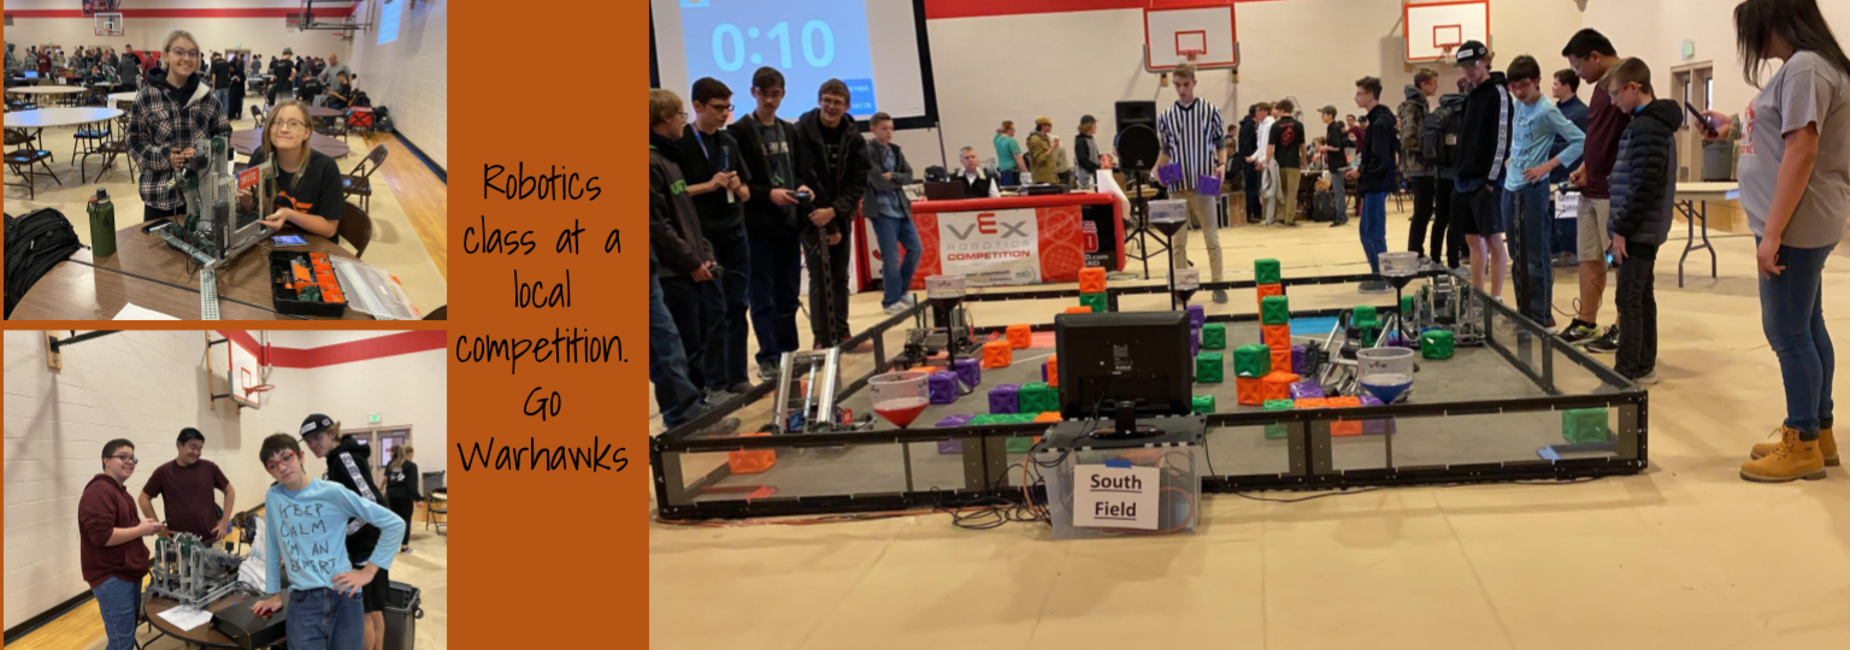 Robotics class at a local competition.